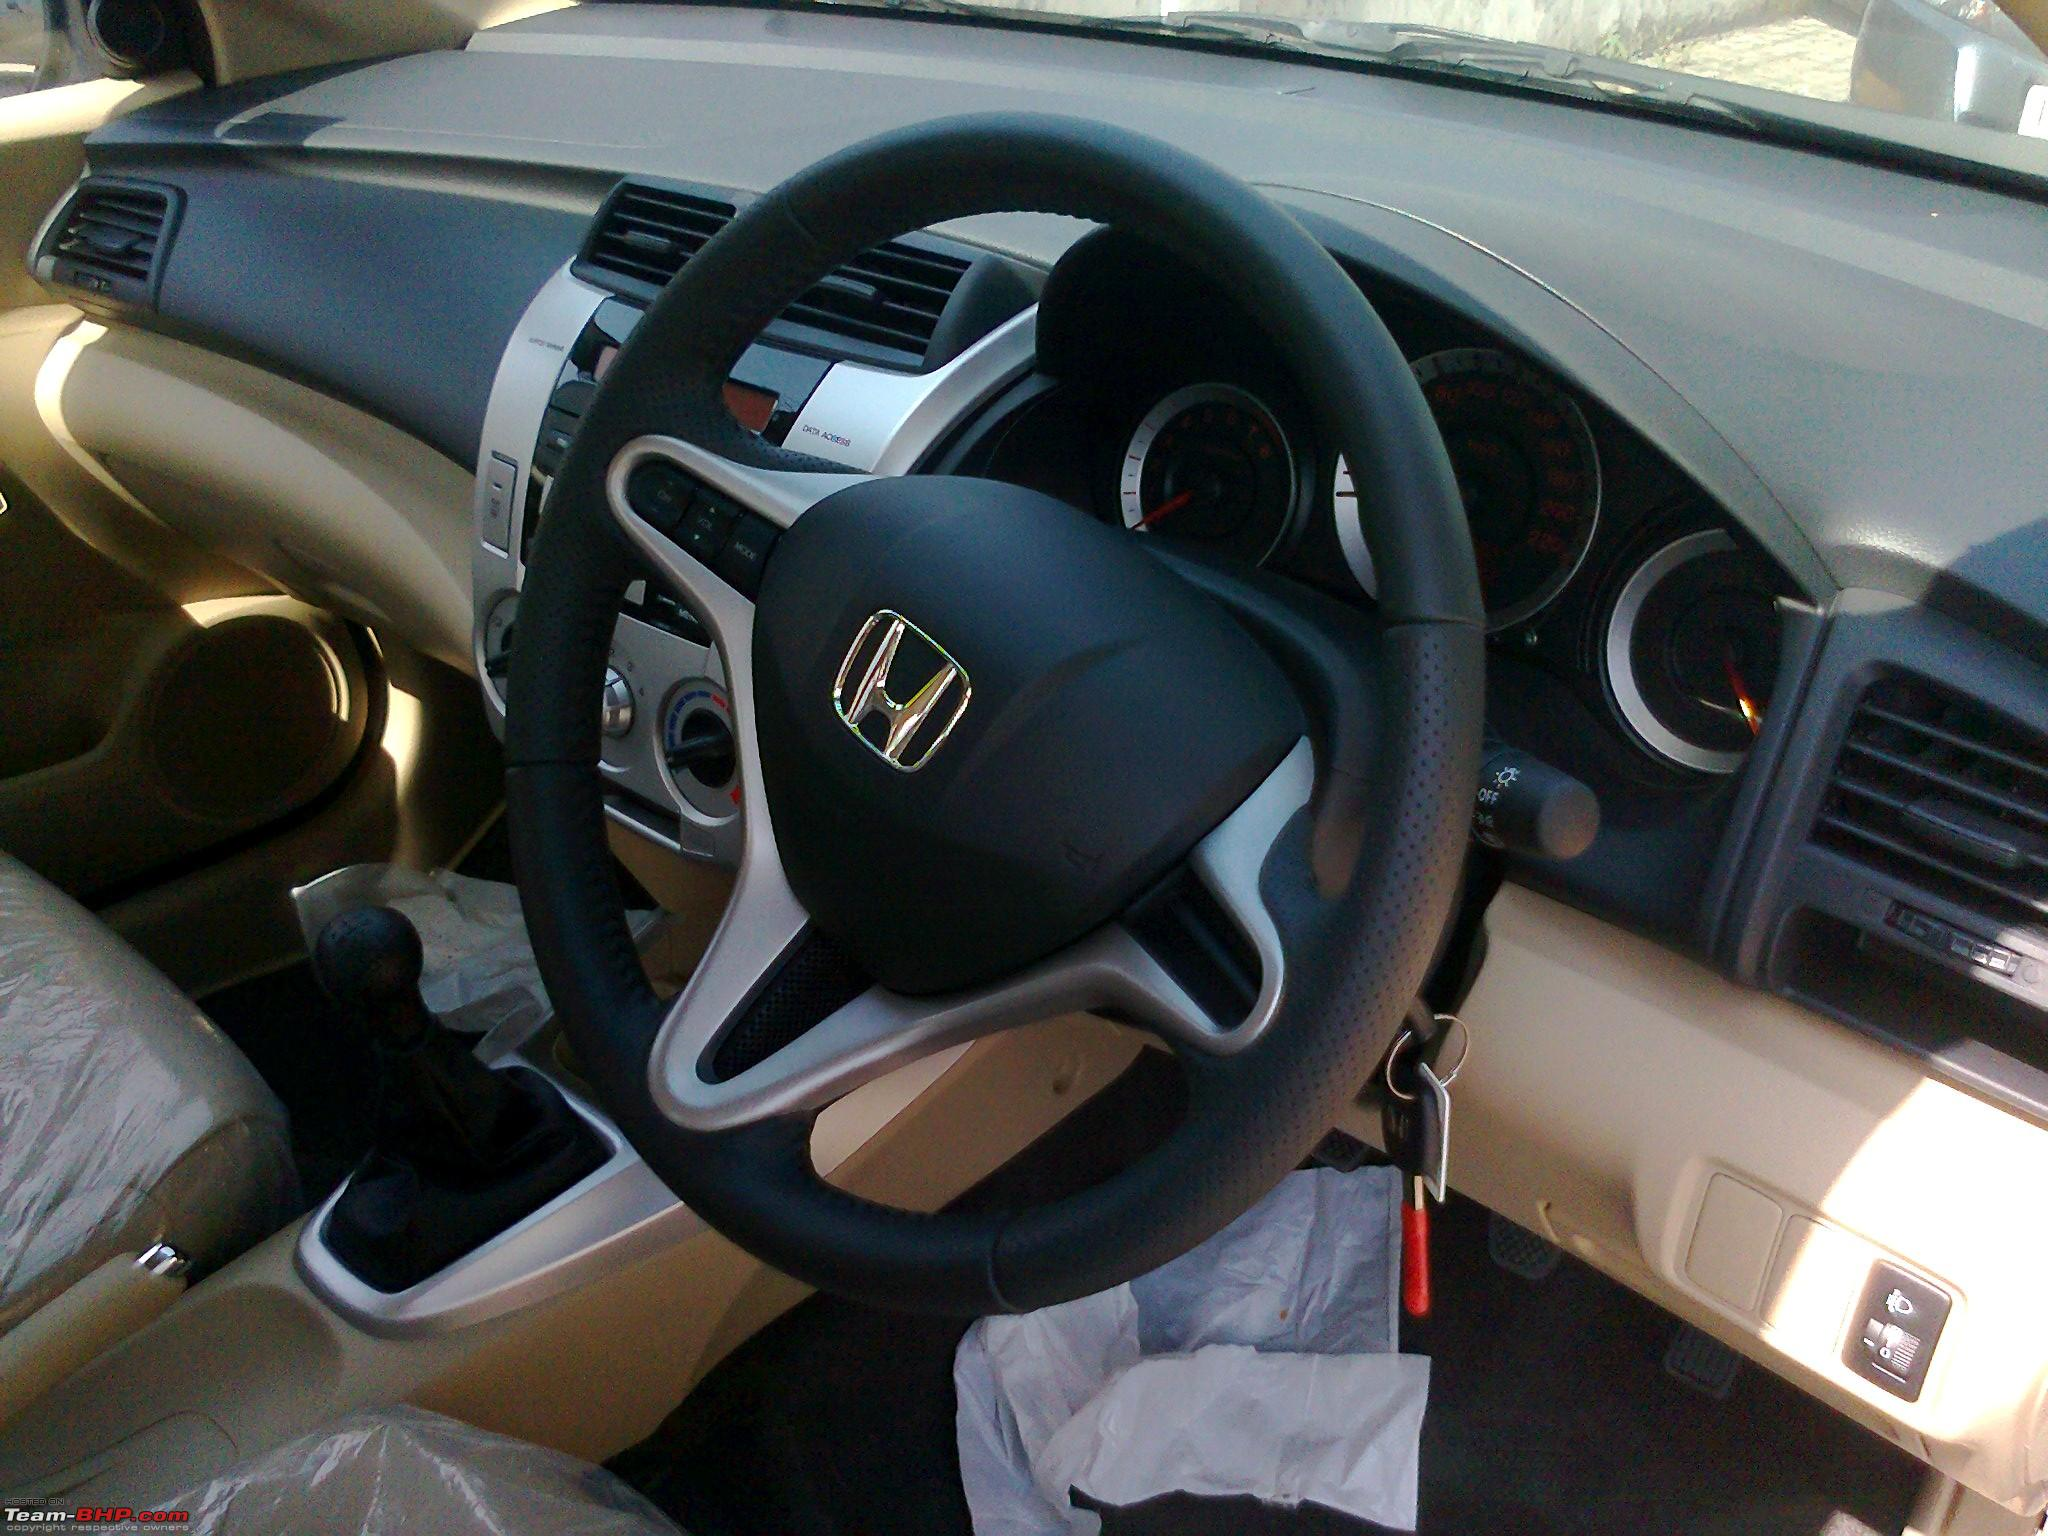 Honda City 2009 Interior Steering Wheel